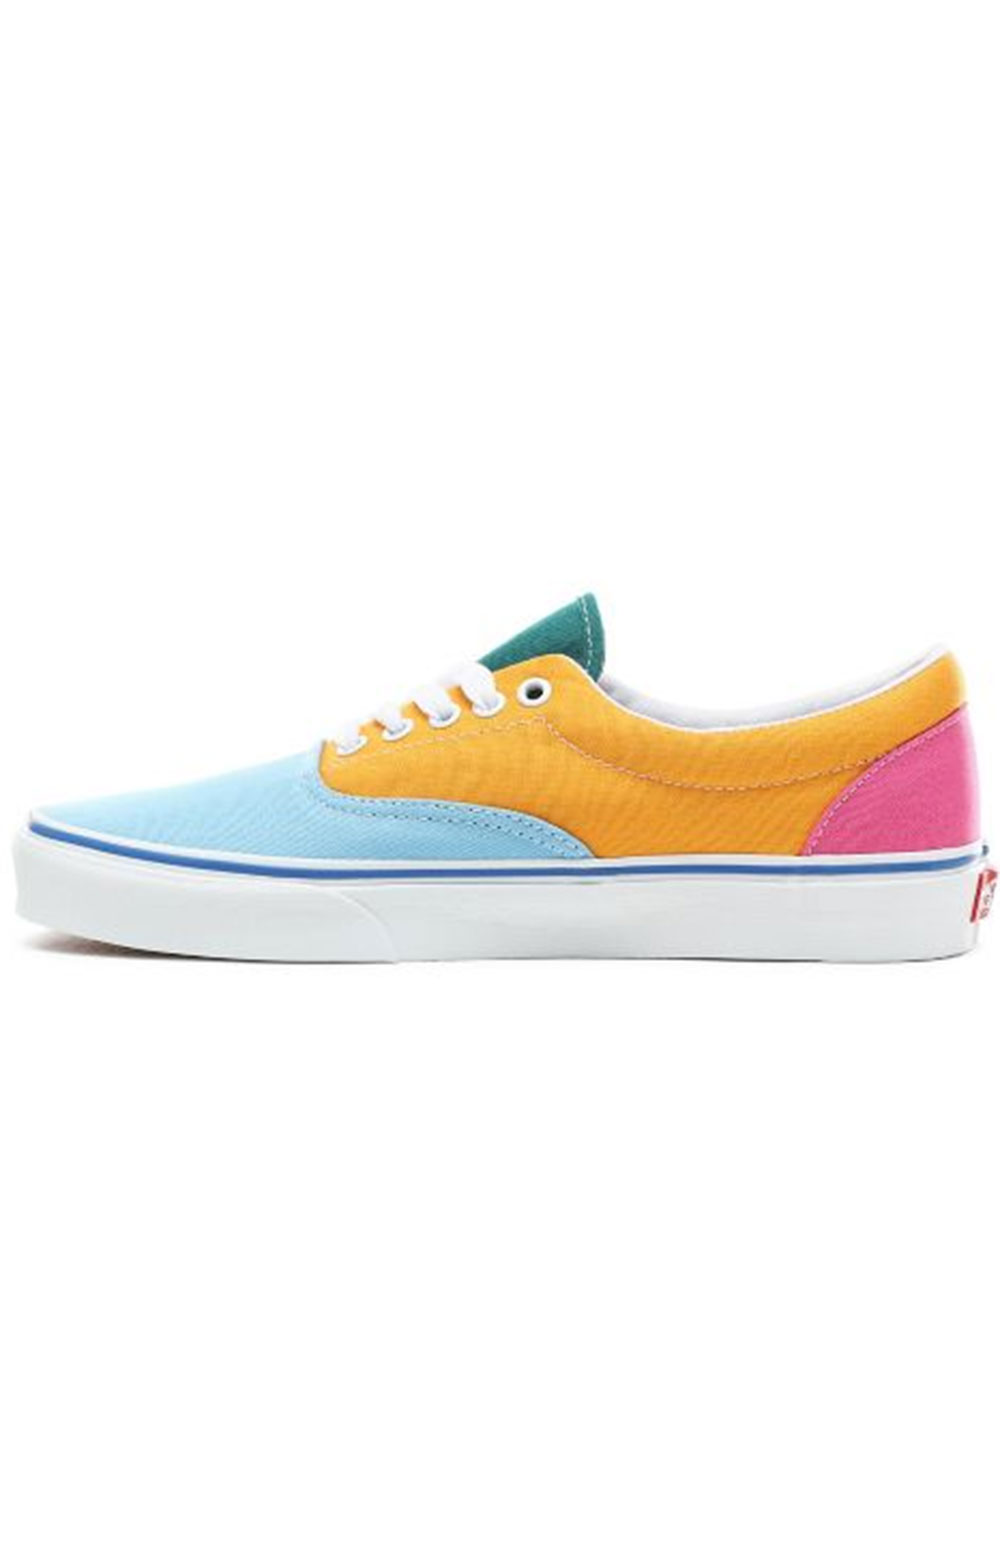 (8FRVOP) Canvas Era Shoe - Multi/Bright 3